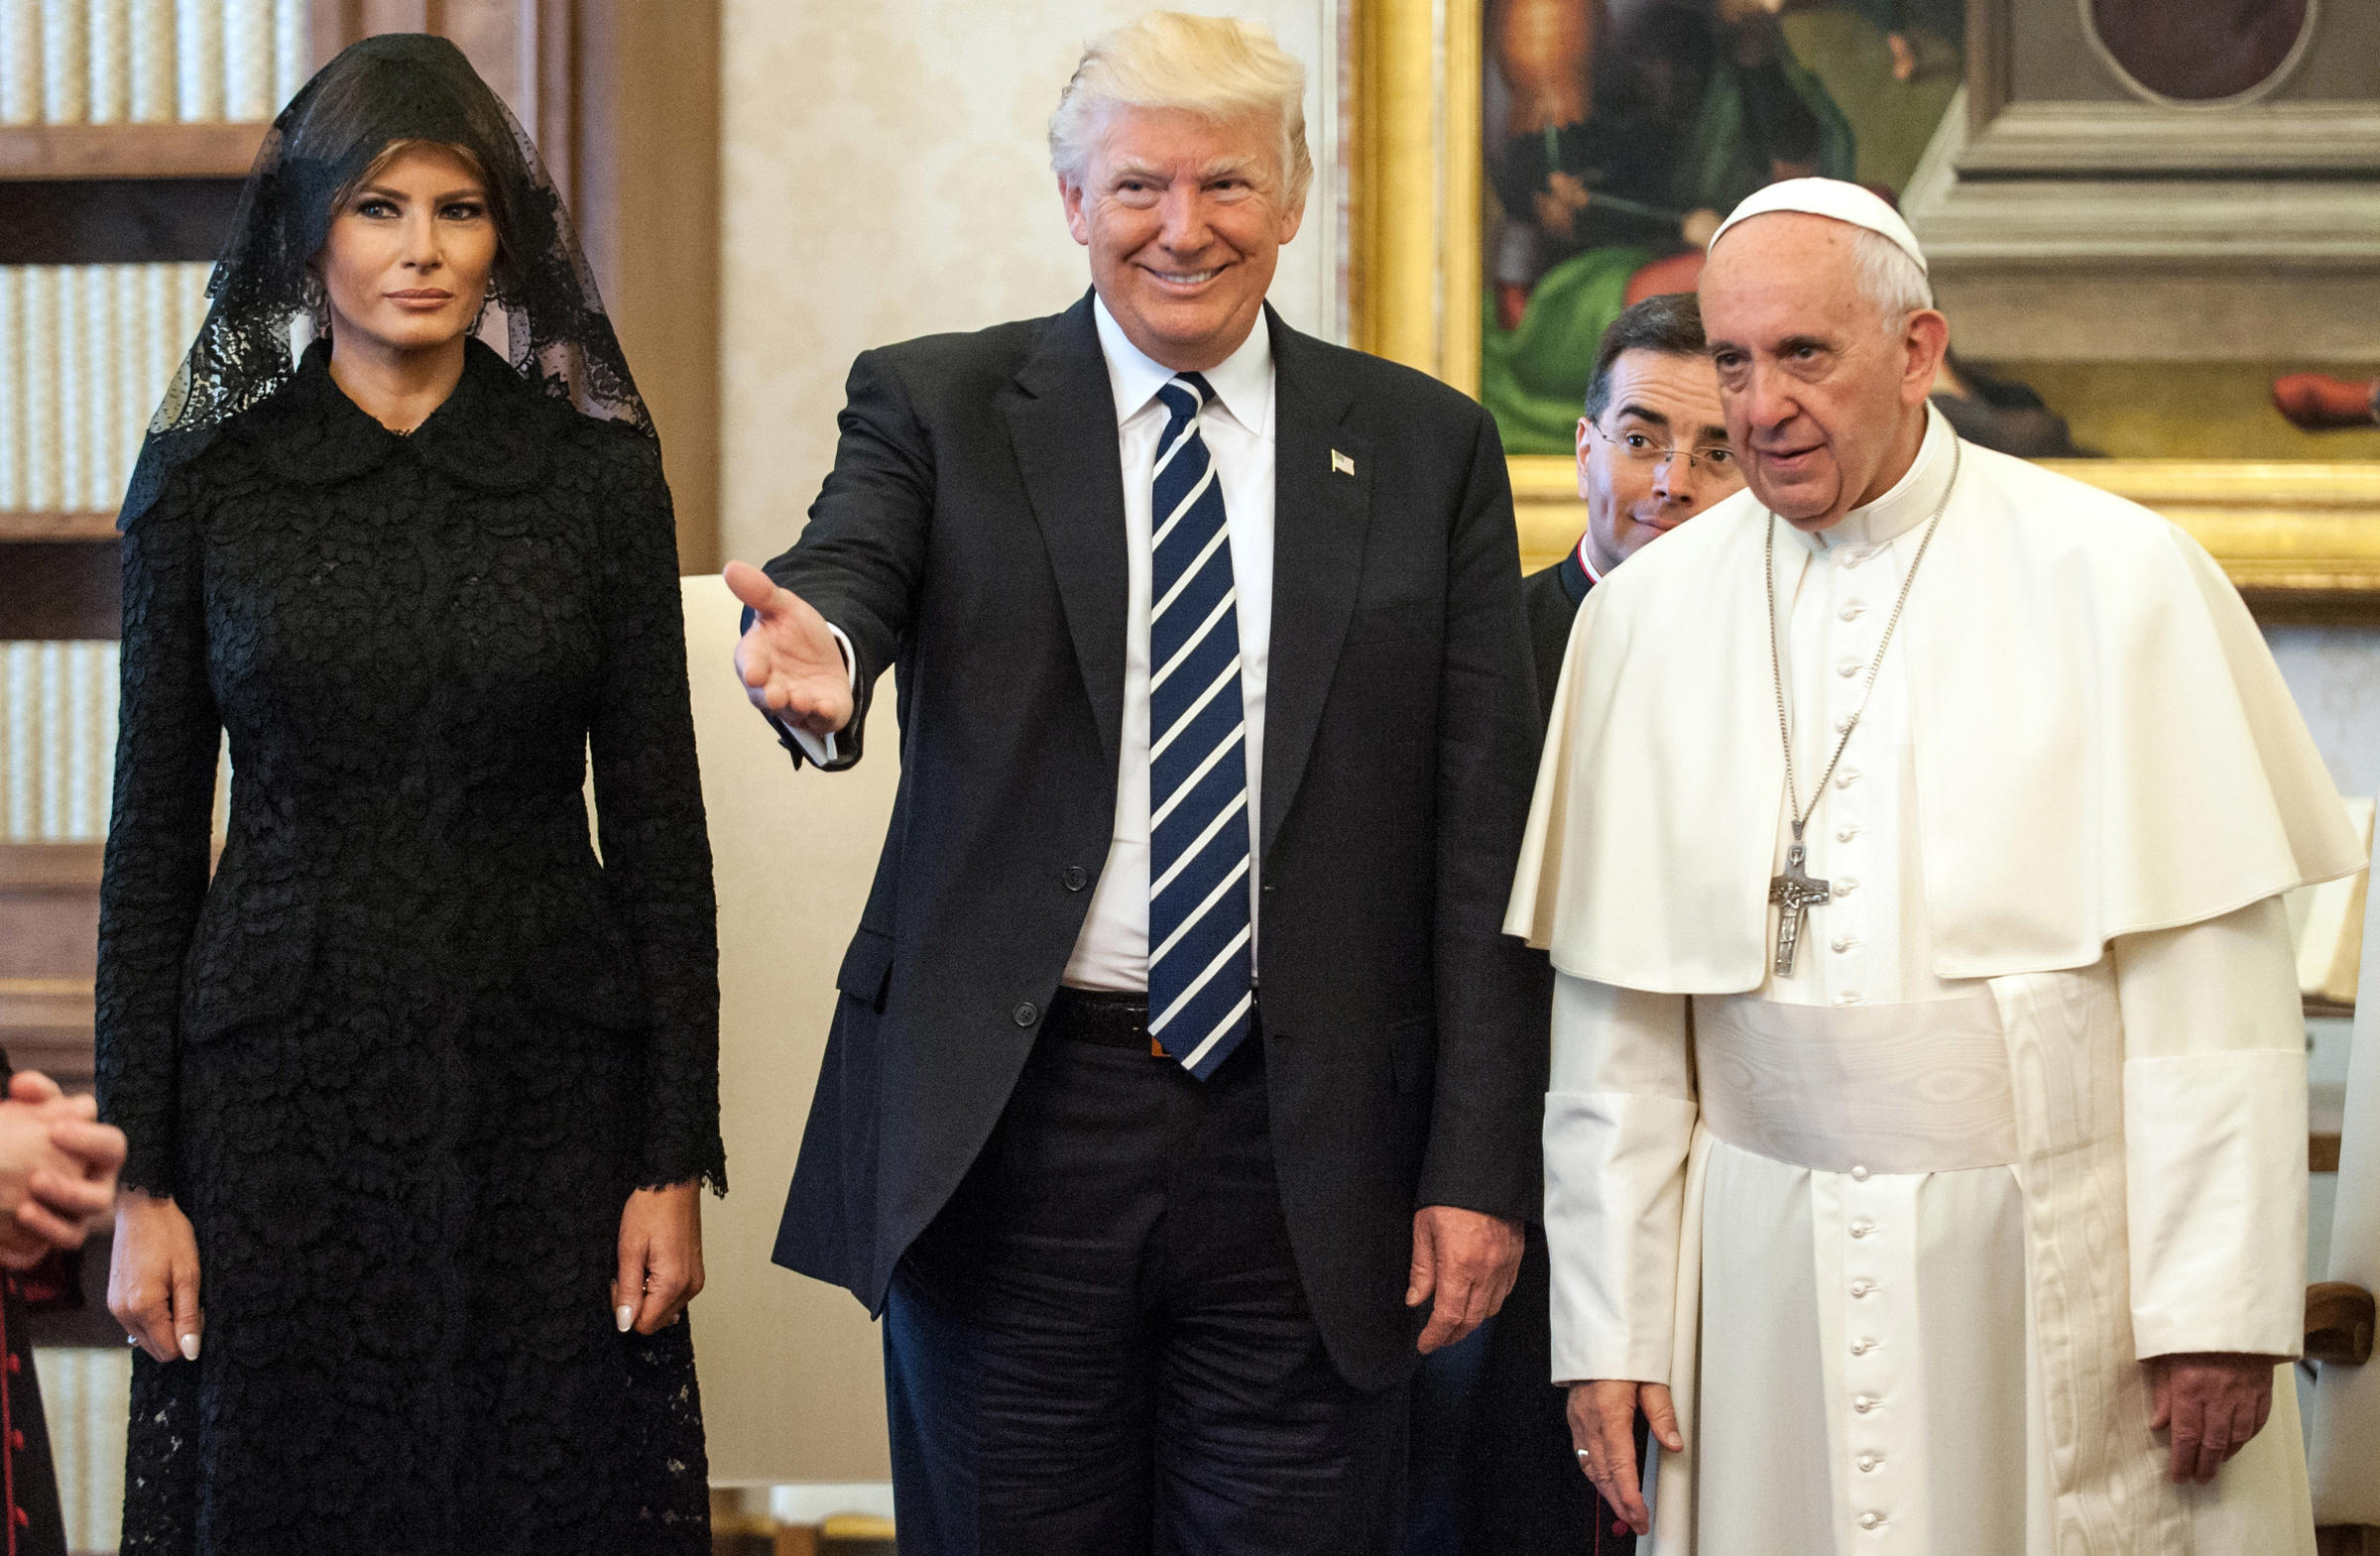 Cardinal Dolan confident Pope 'got his points across' with Trump